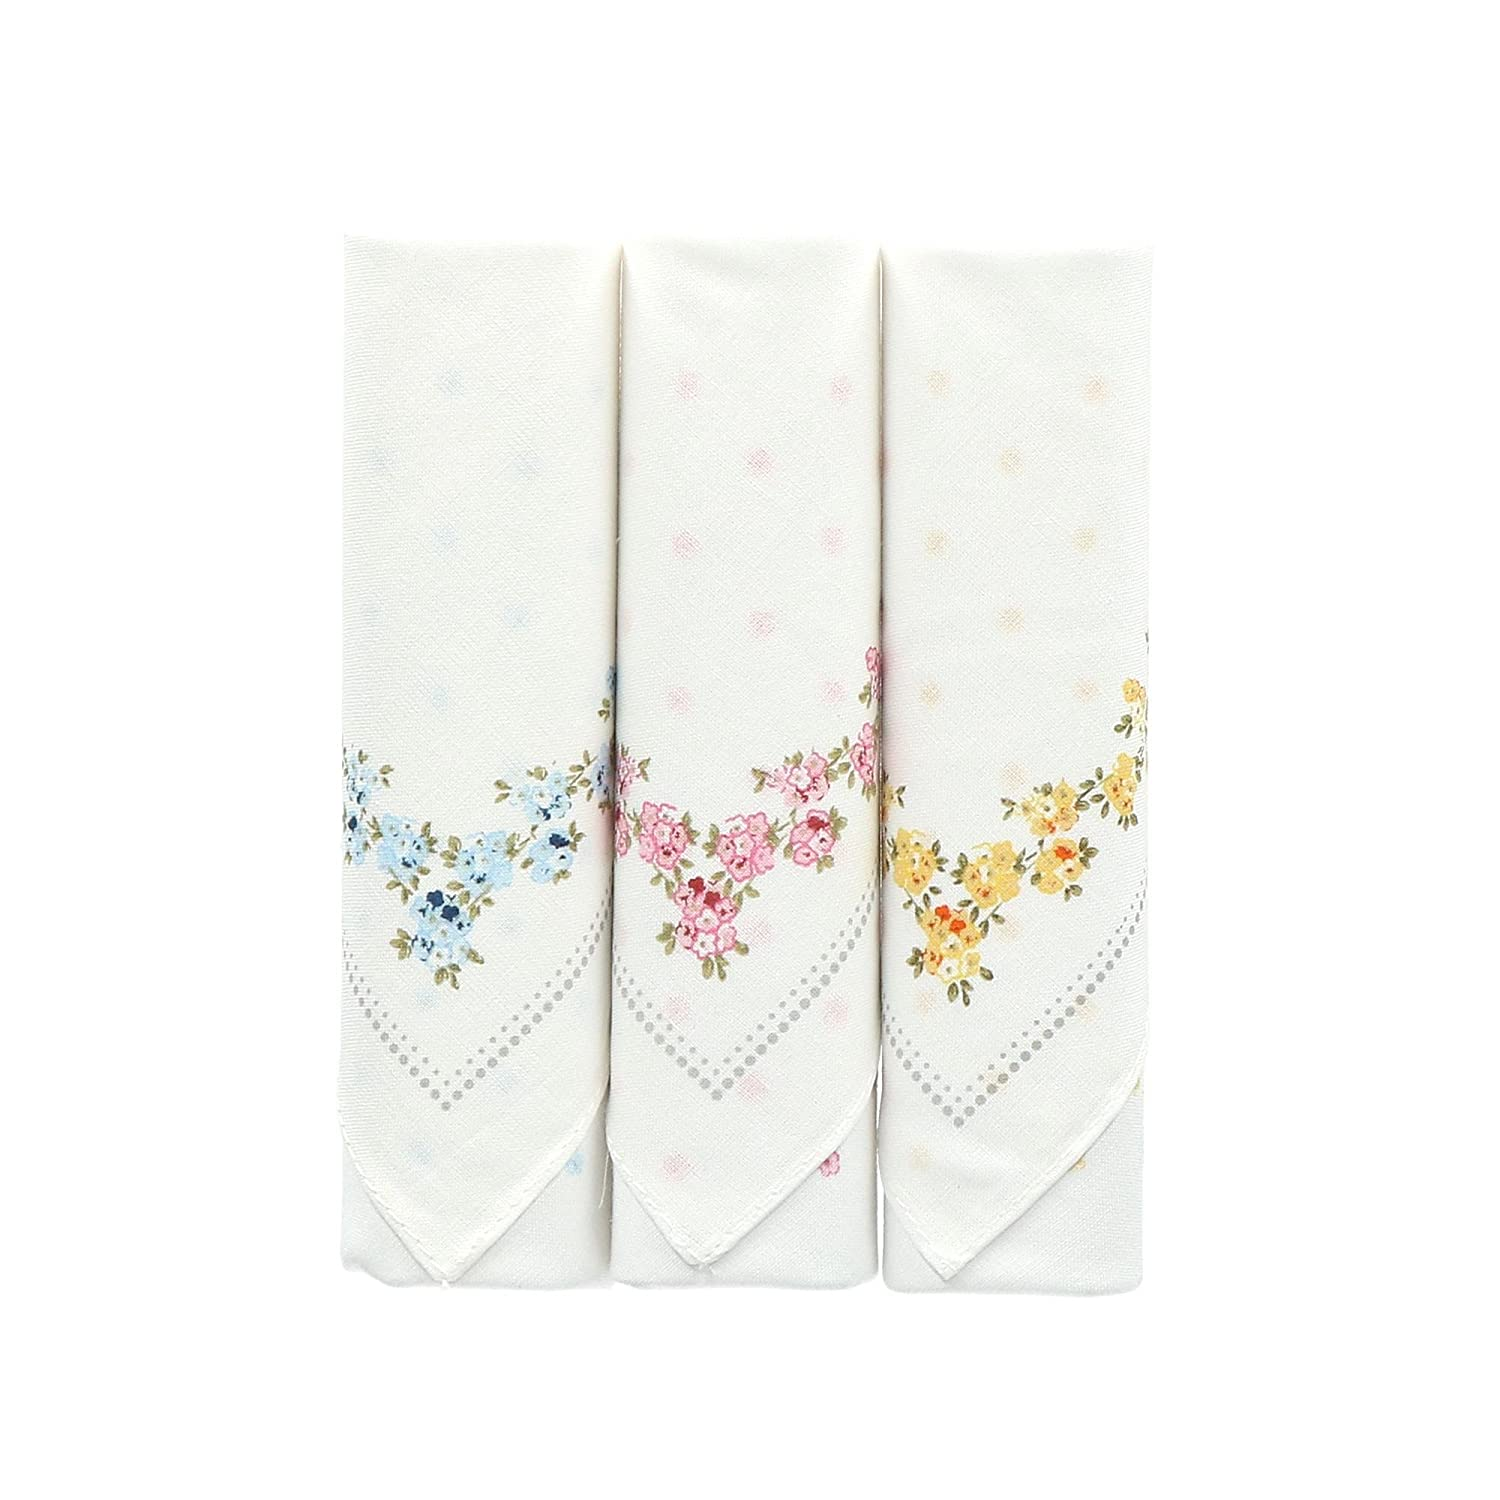 Selini Women's Floral Bundle Embroidered Cotton Handkerchiefs (Pack of 3), White